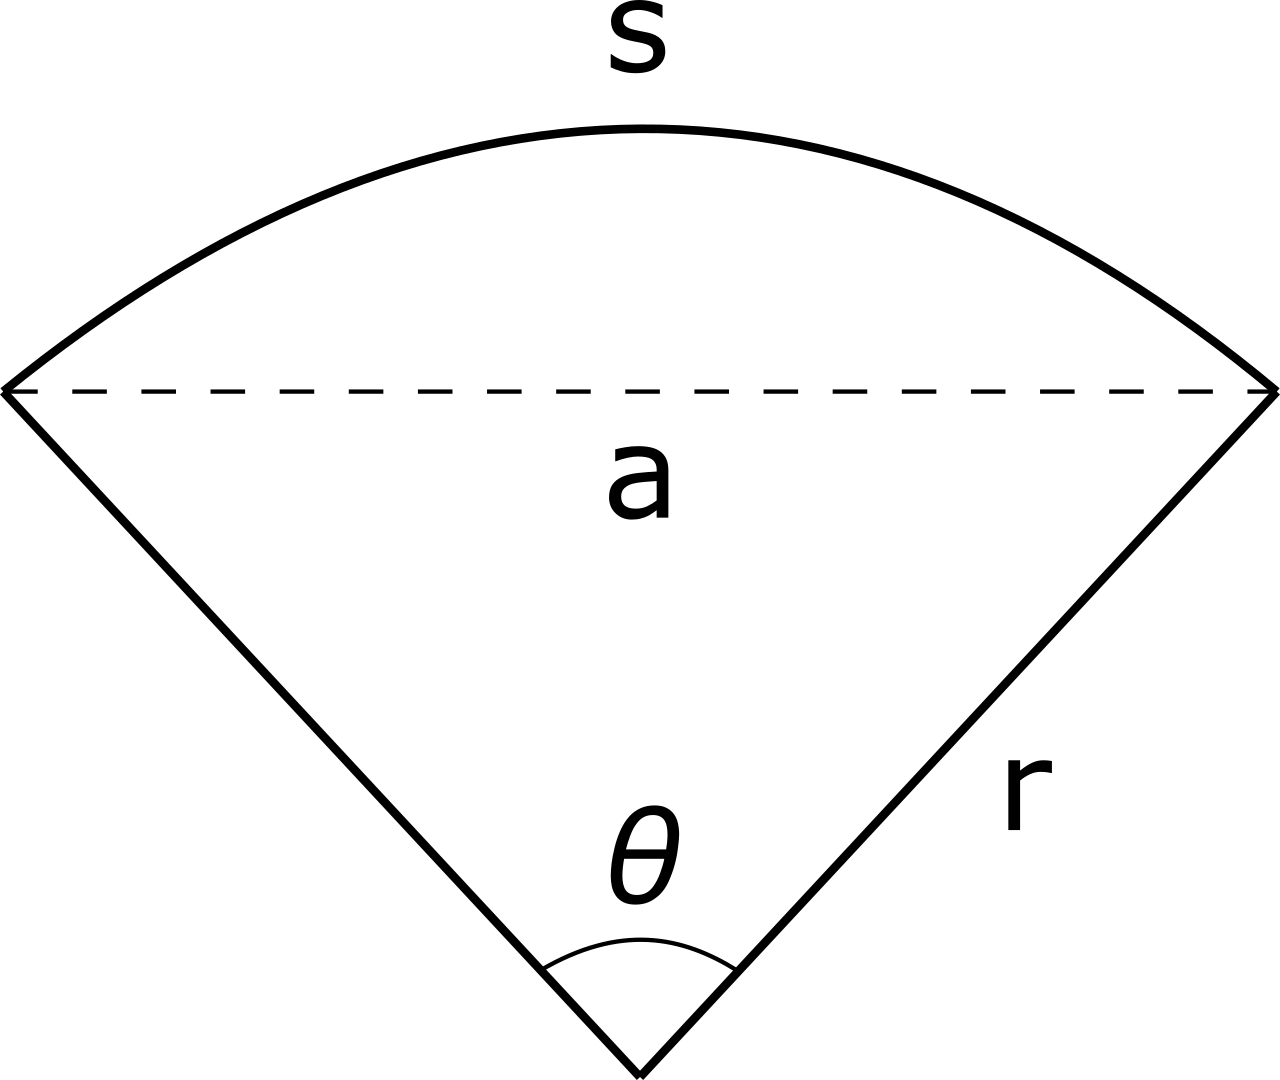 diagram of a sector showing the radius, central angle, chord length, and arc length